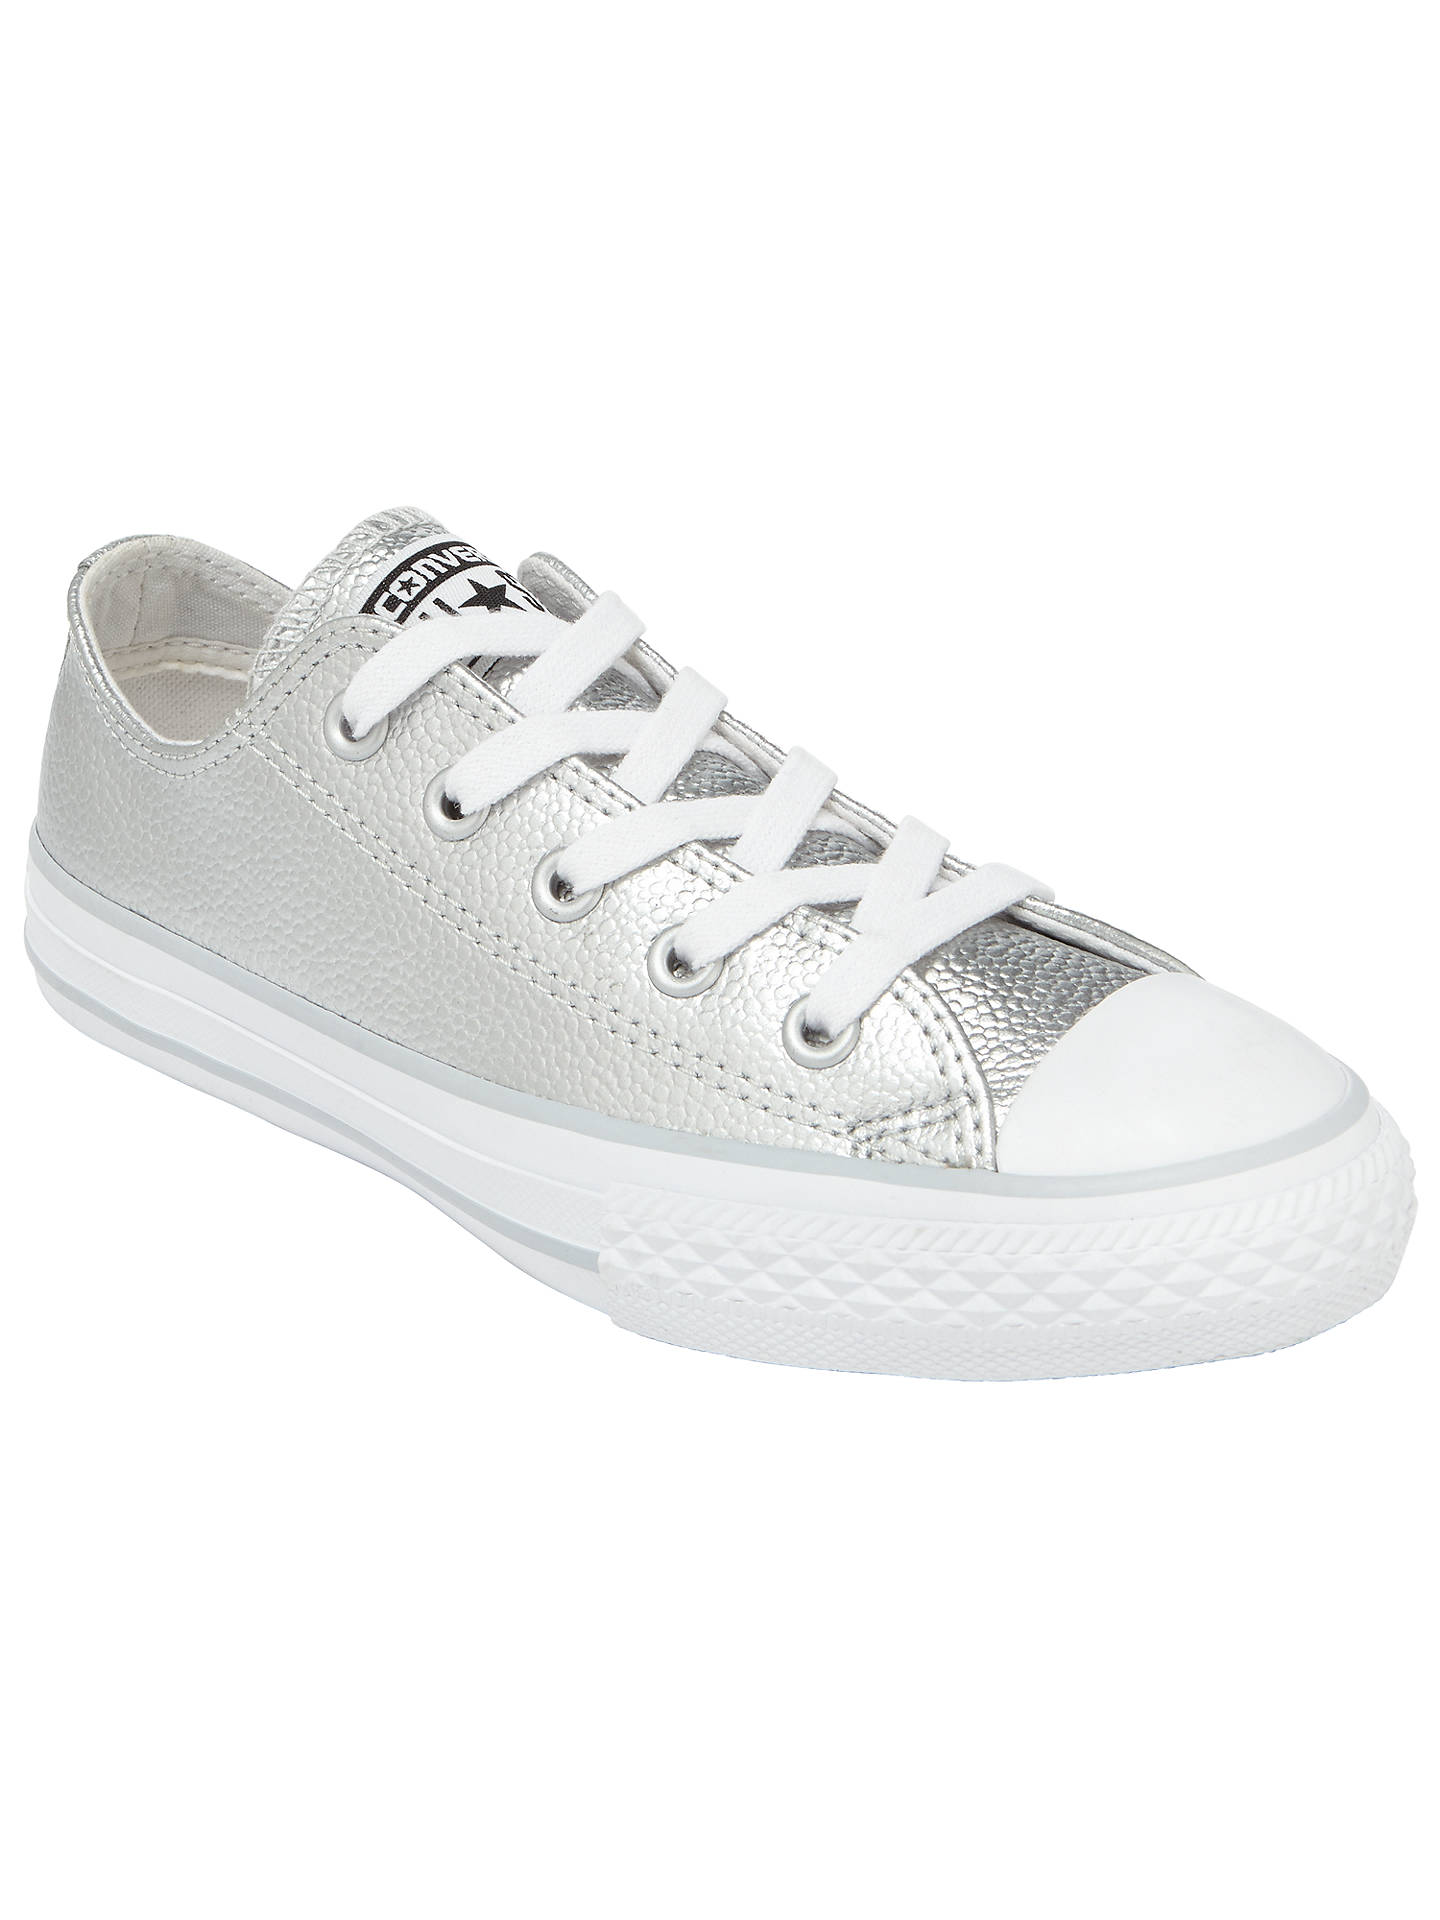 0a2eab8dc402 Buy Converse Children s Chuck Taylor All Star Lace Shoes